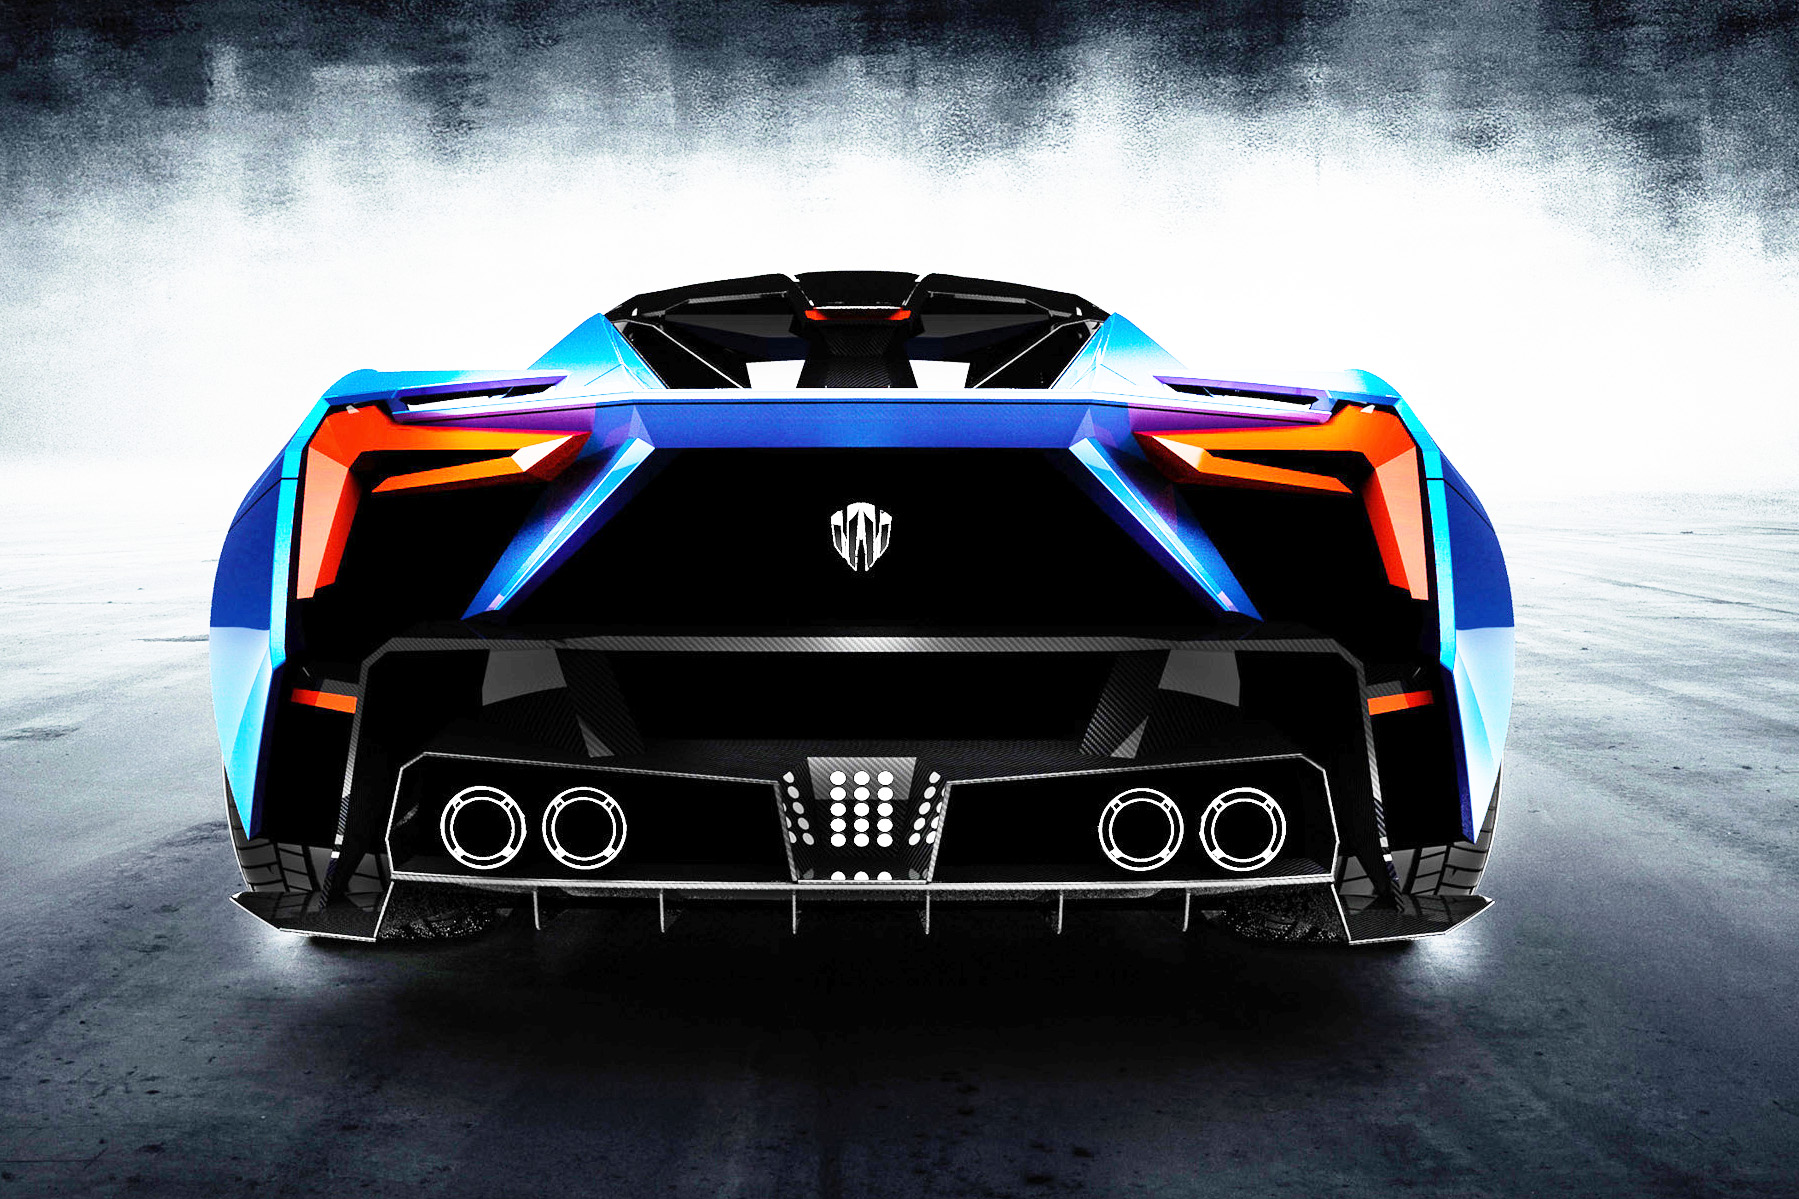 Super Car Event Wallpaper Fenyr Supersport The Grim Supercar From The Middle East